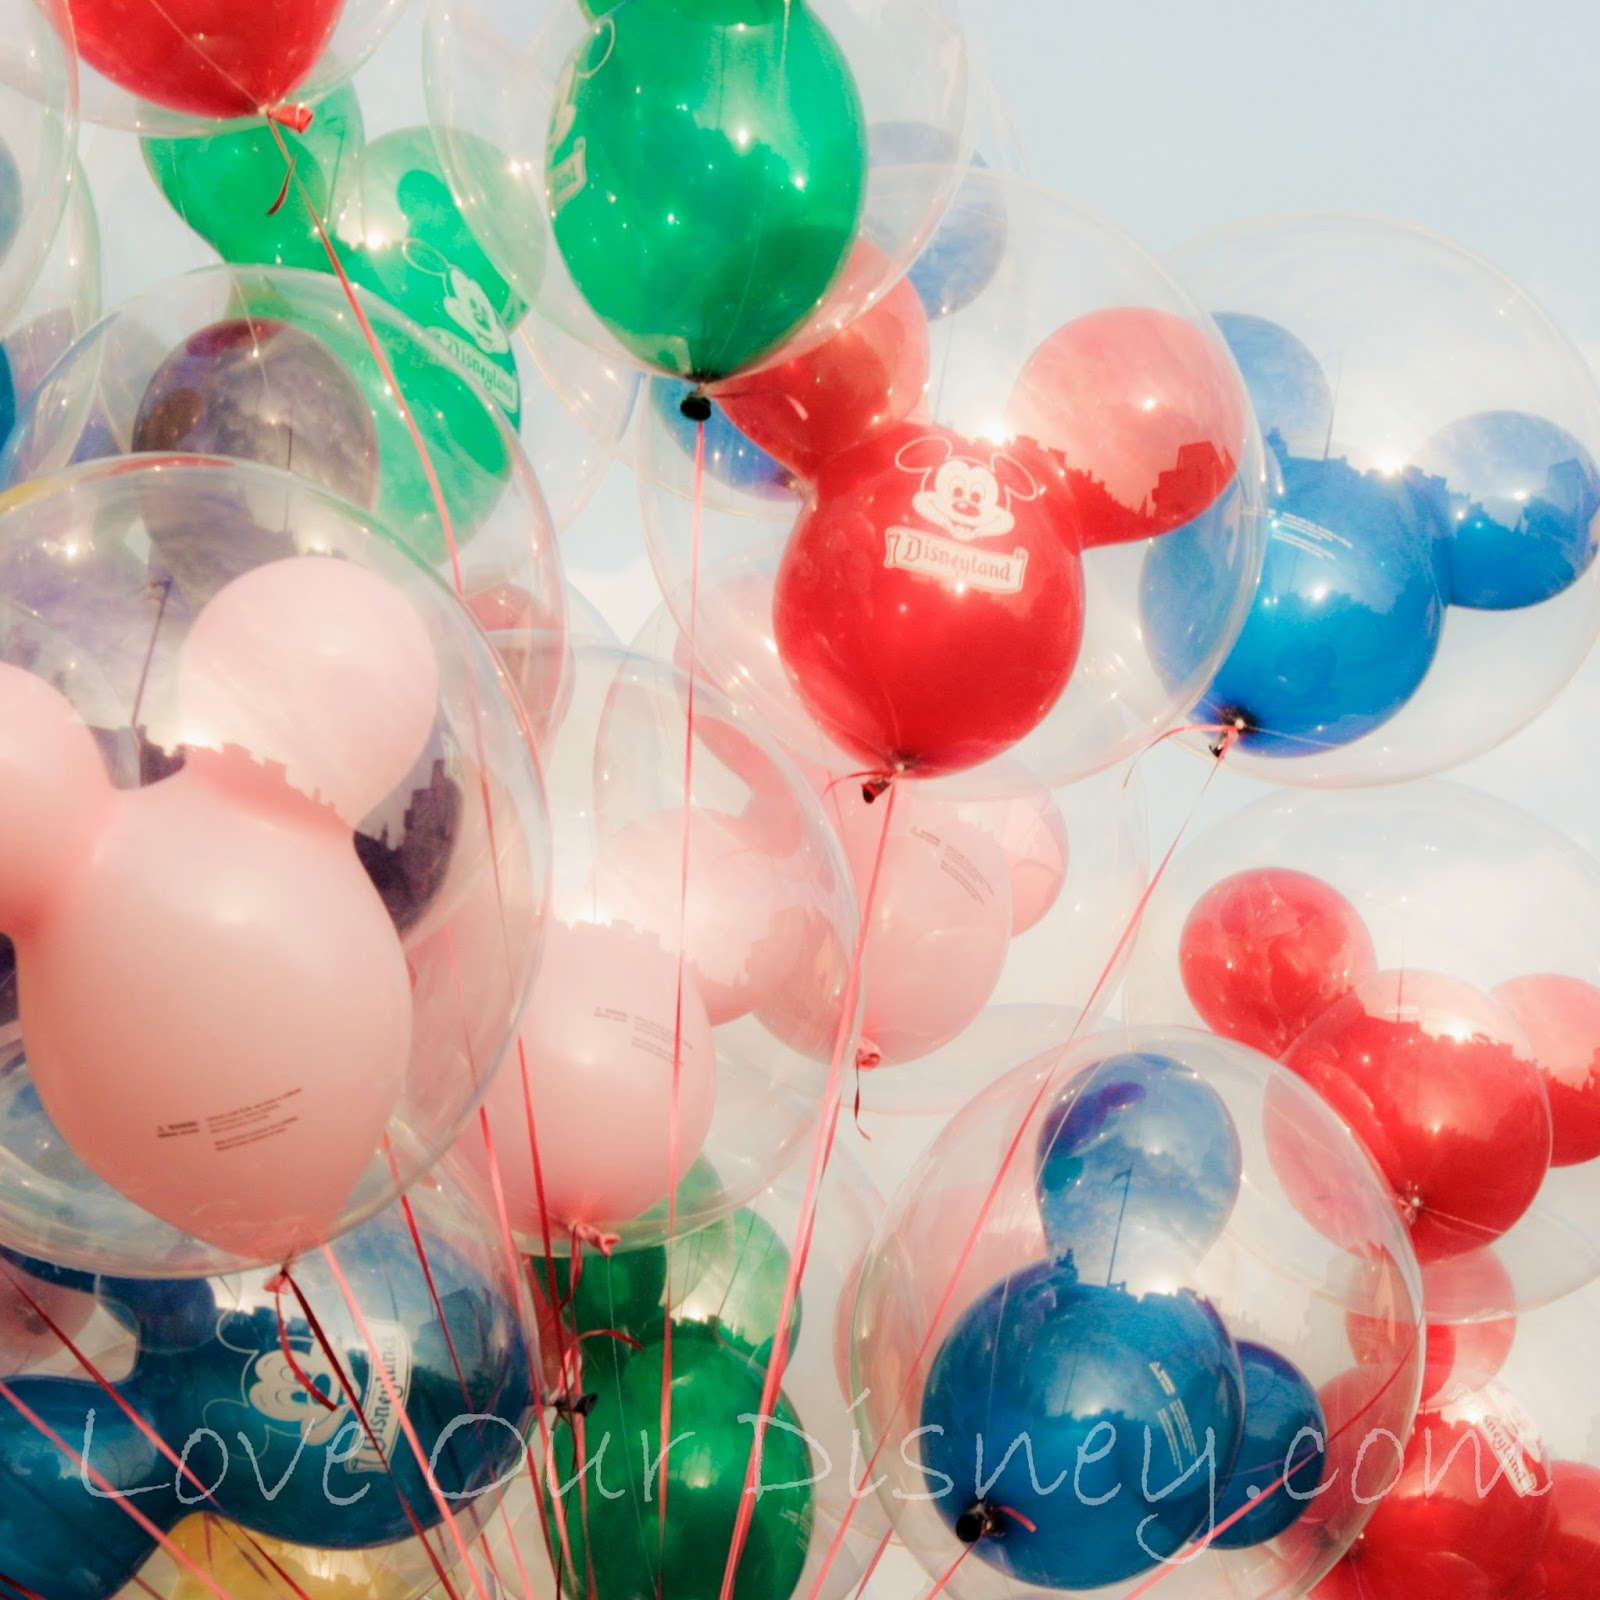 23 Disneyland Tips everyone can use. Two awesome Balloon tips included. LoveOurDisney.com